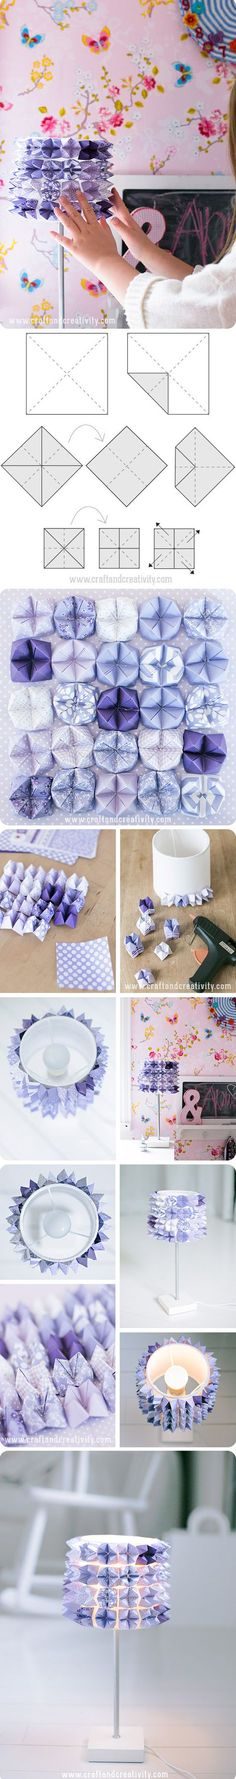 Discover recipes, home ideas, style inspiration and other ideas to try. Origami Lamps, Box Origami, Paper Crafts Origami, Diy Craft Projects, Diy And Crafts, Origami Tutorial, Paper Folding, Creative Crafts, Crafty